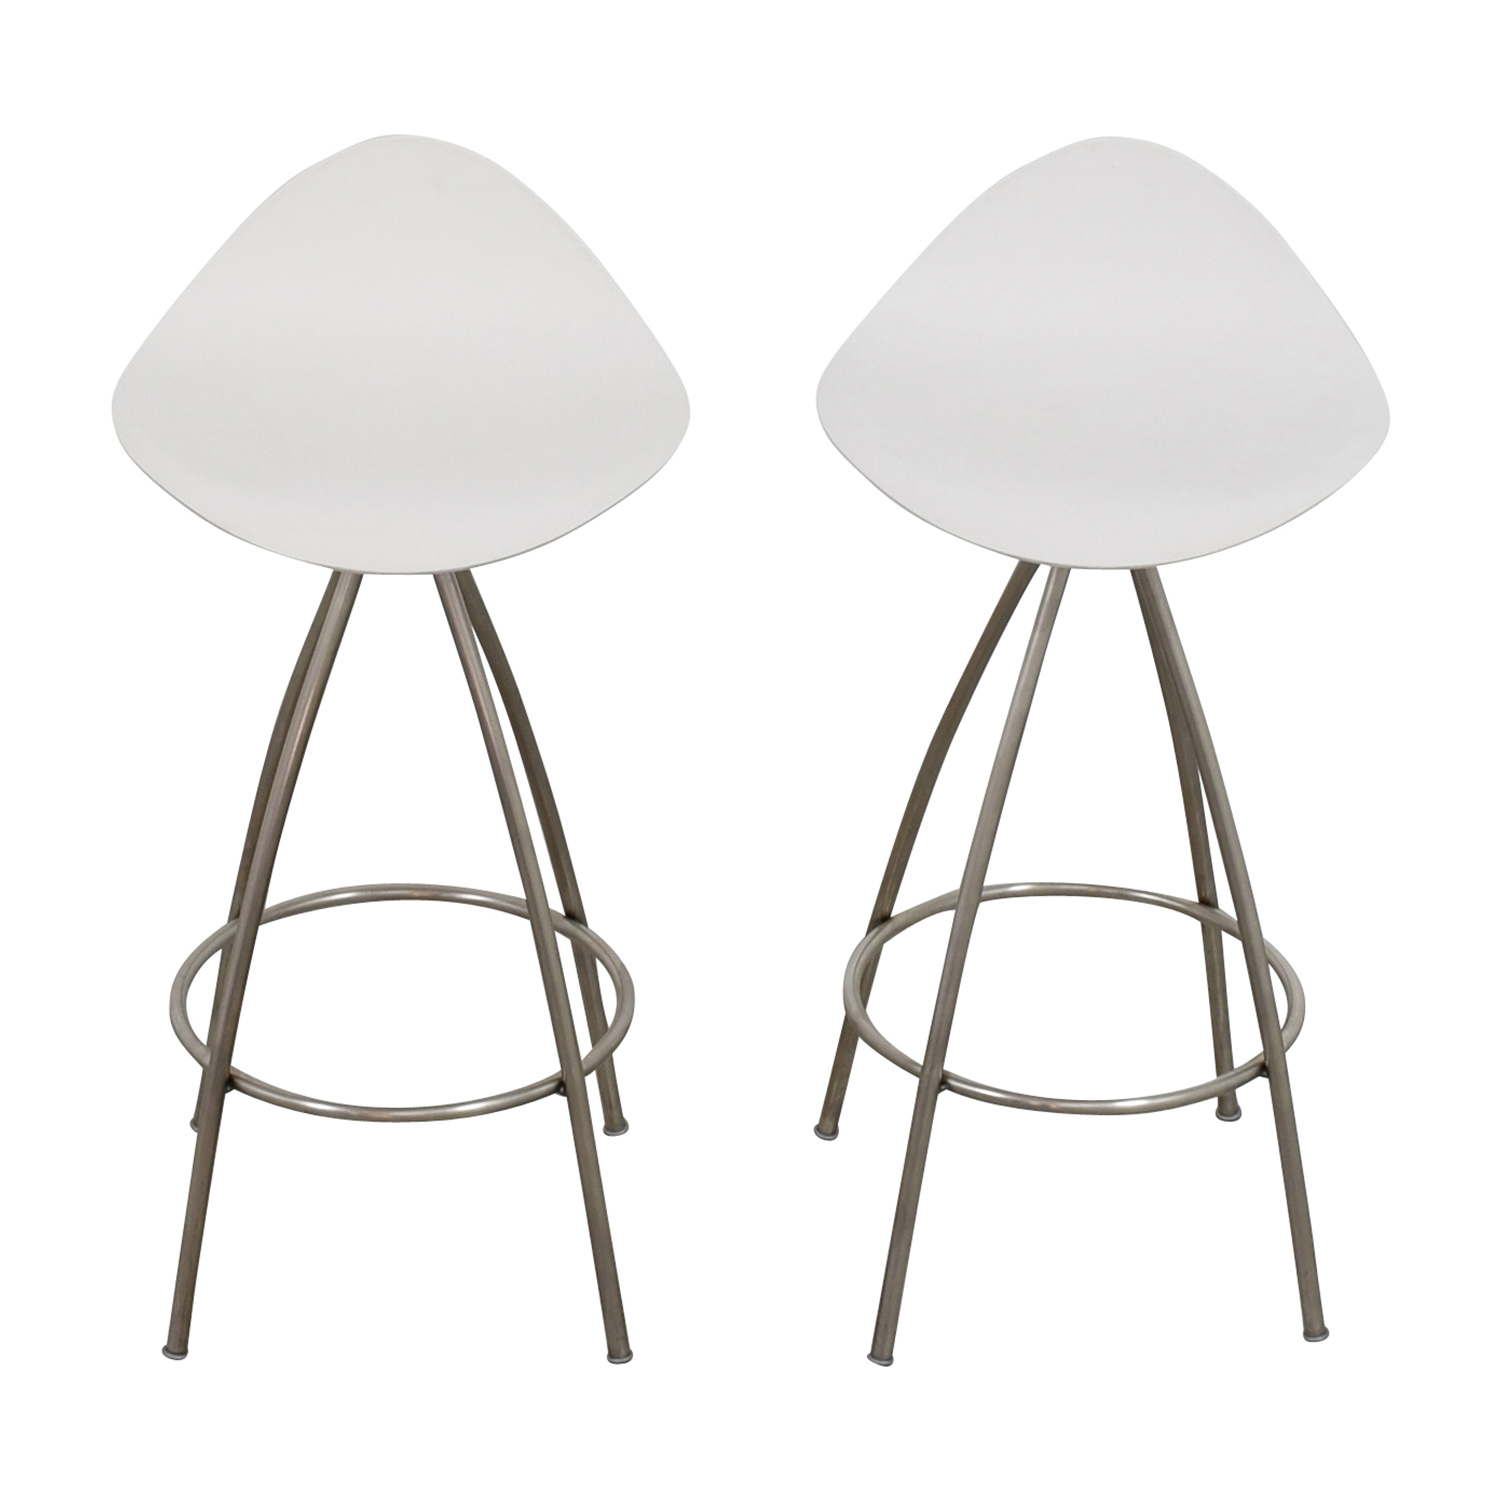 ... shop DWR Onda Counter Stool Design Within Reach Chairs ...  sc 1 st  Furnishare & 50% OFF - Design Within Reach DWR Onda Counter Stool / Chairs islam-shia.org